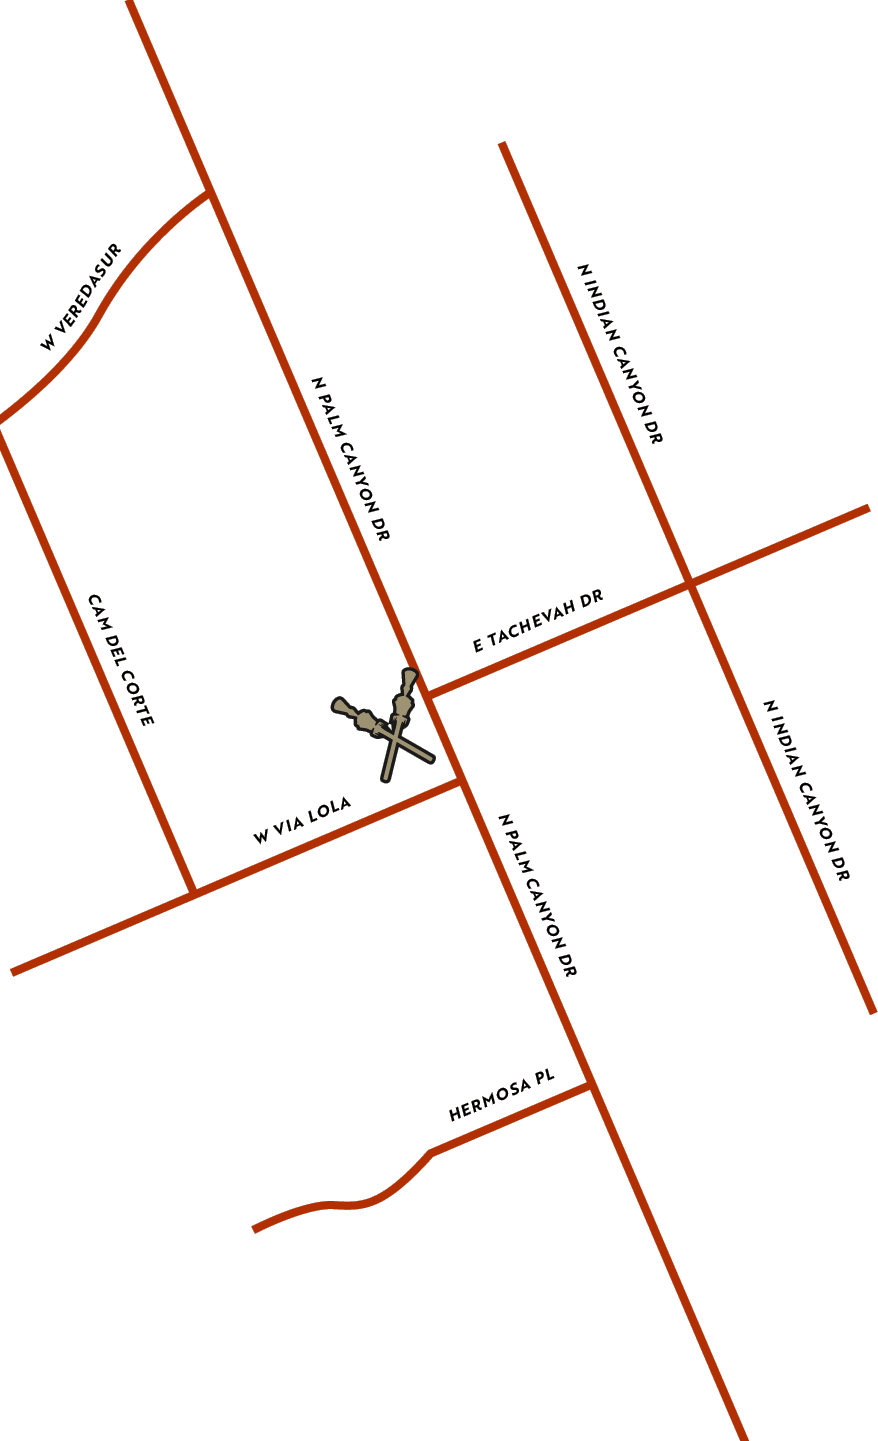 Map showing where Ernest Coffee Palm Springs is located